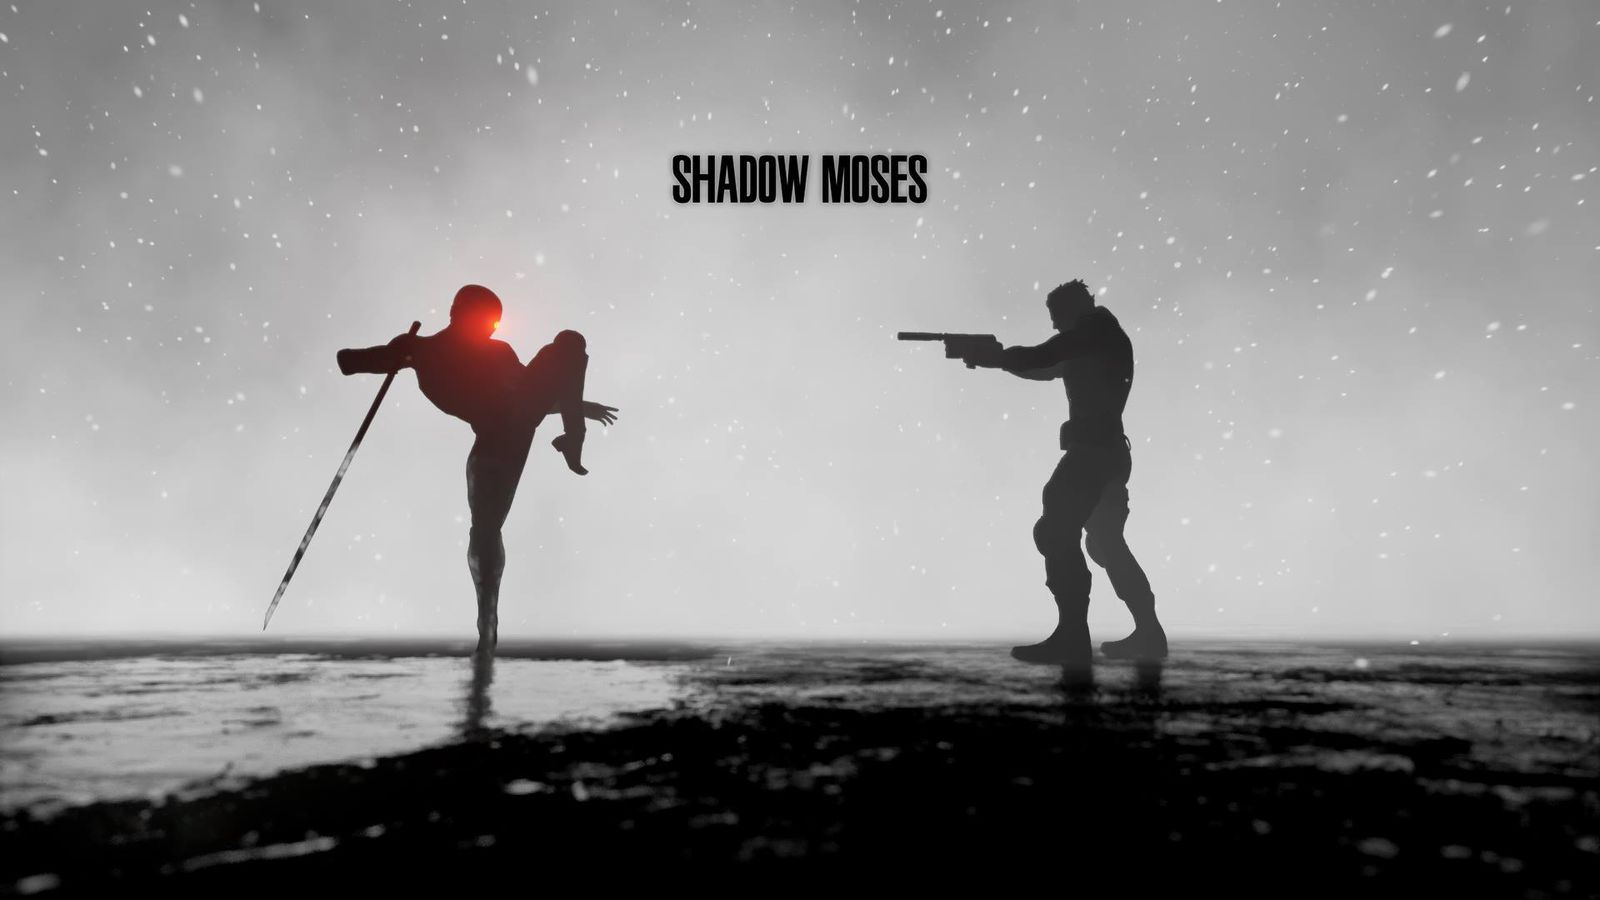 metal gear solid fan project shadow moses canceled unceremoniously